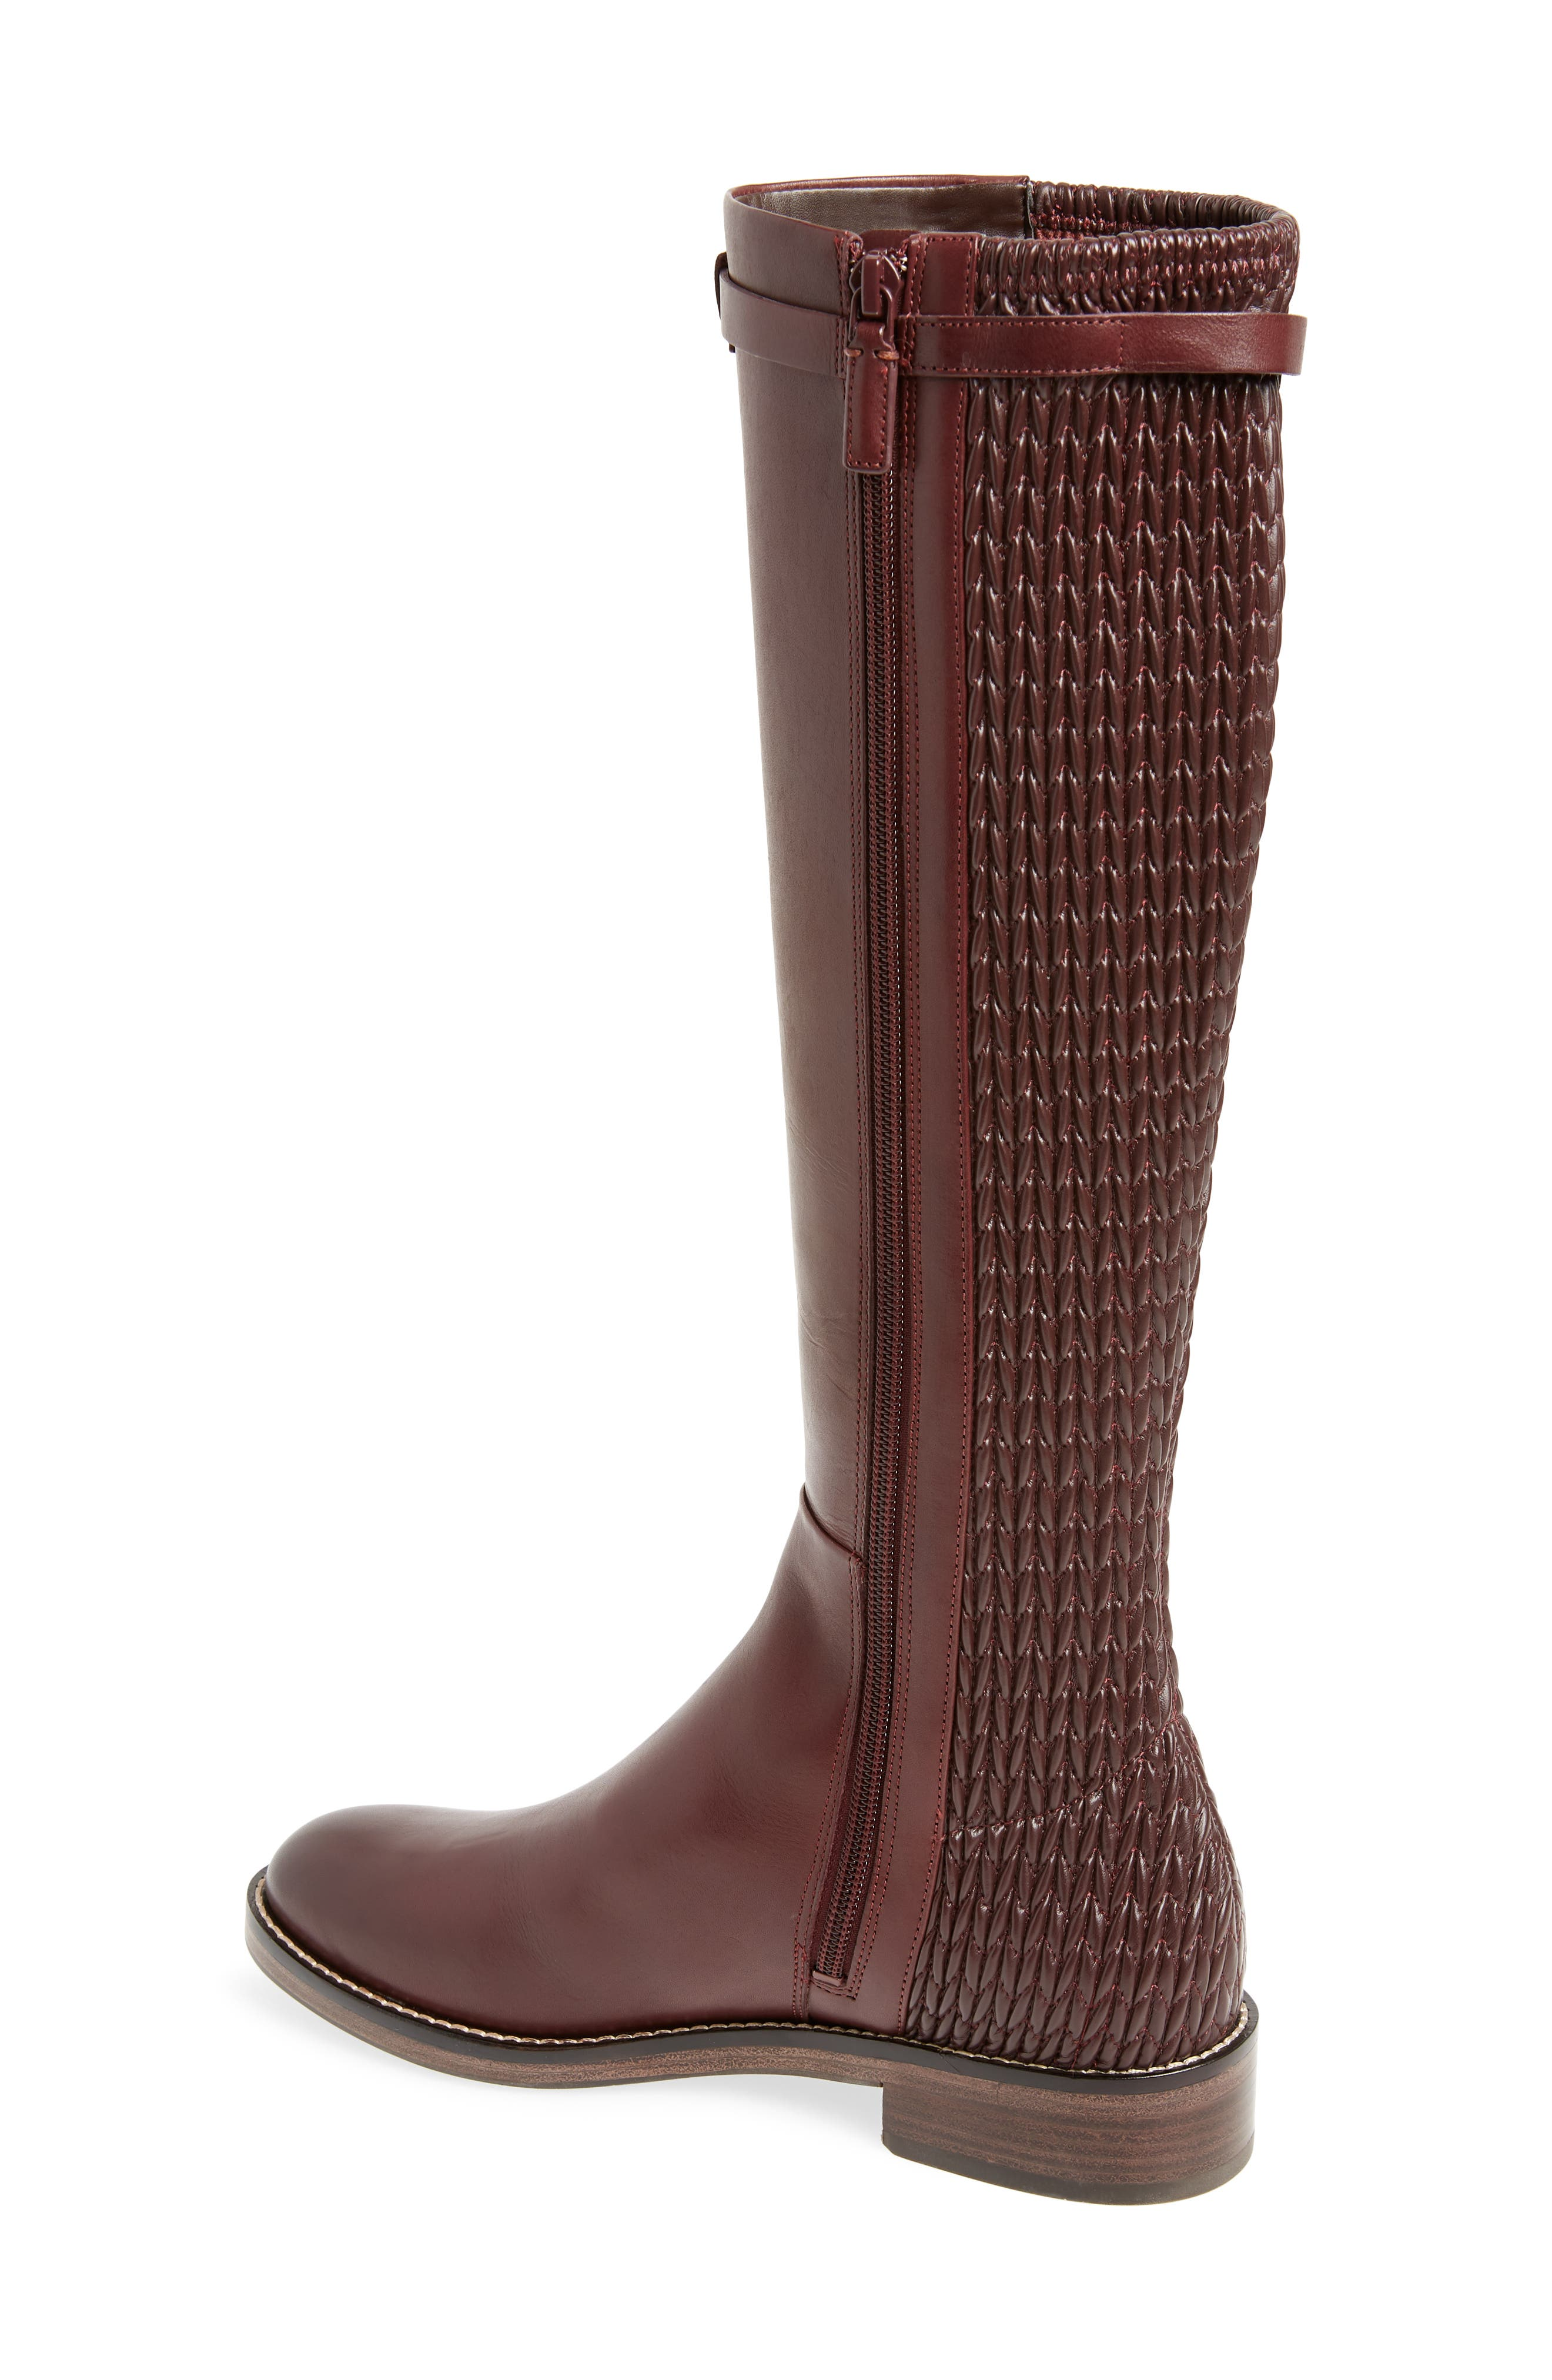 COLE HAAN, Lexi Grand Knee High Stretch Boot, Alternate thumbnail 2, color, CORDOVAN LEATHER